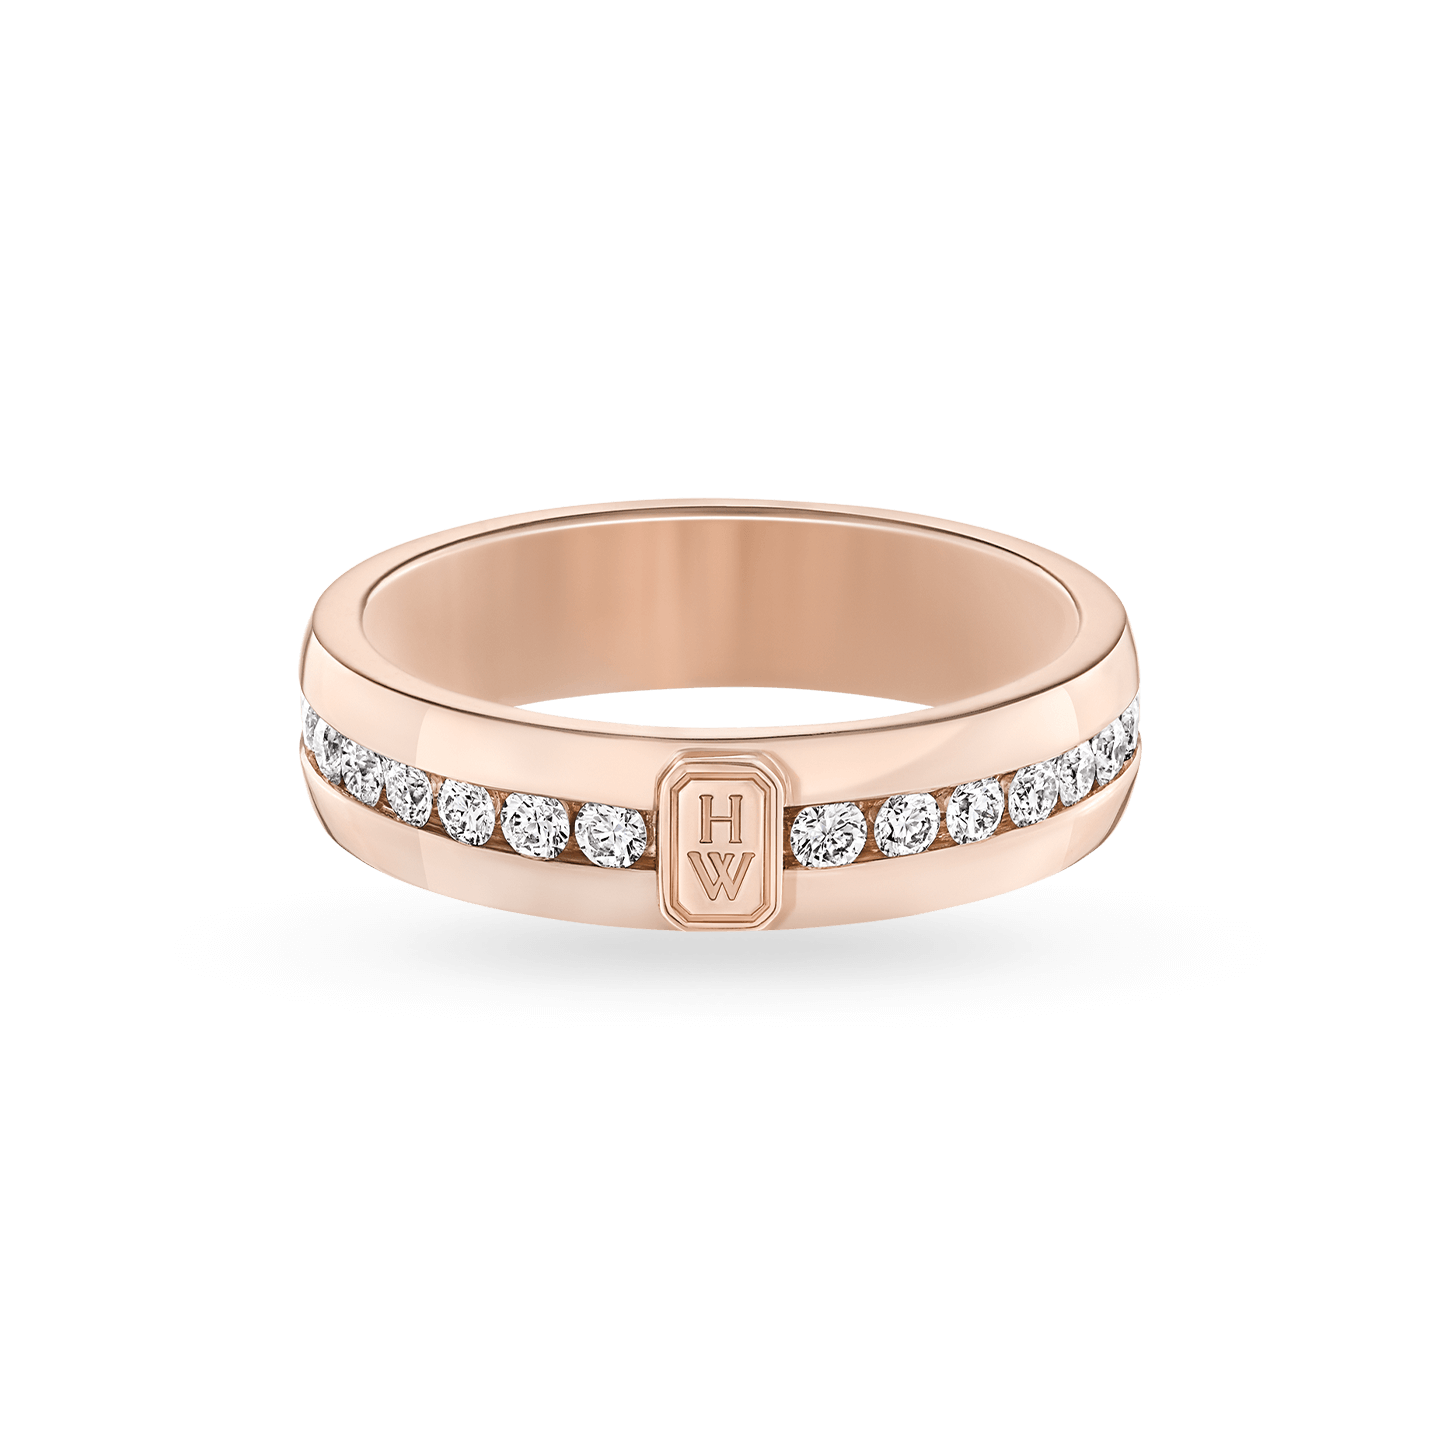 HW Logo Rose Gold Diamond Ring, Product Image 1